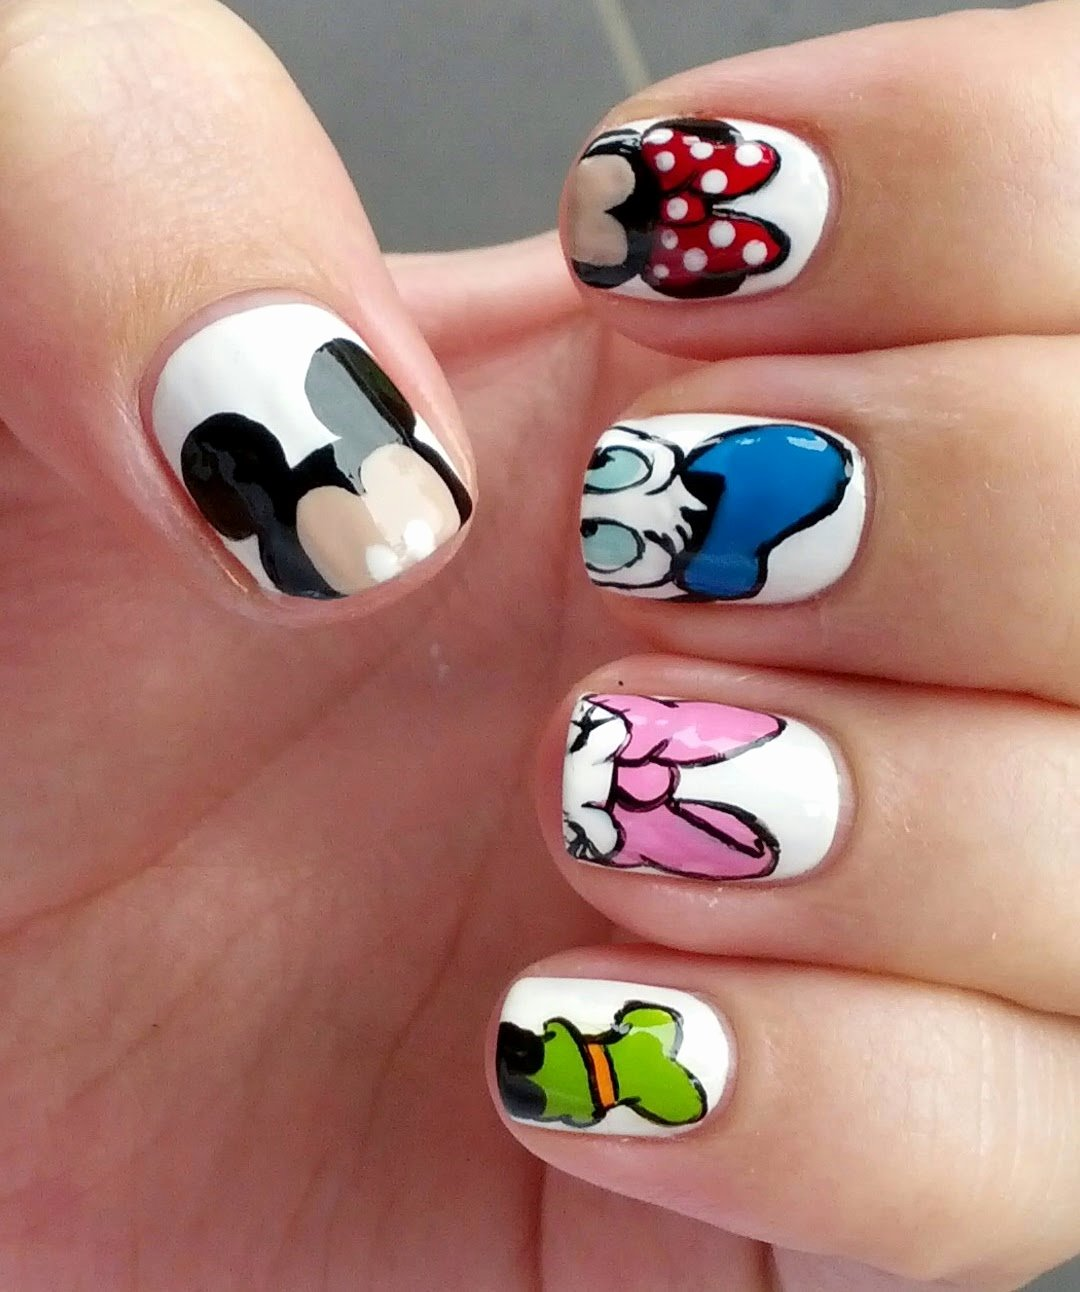 Nail Art Designs Videos Awesome 26 Disney Nail Art Designs Ideas